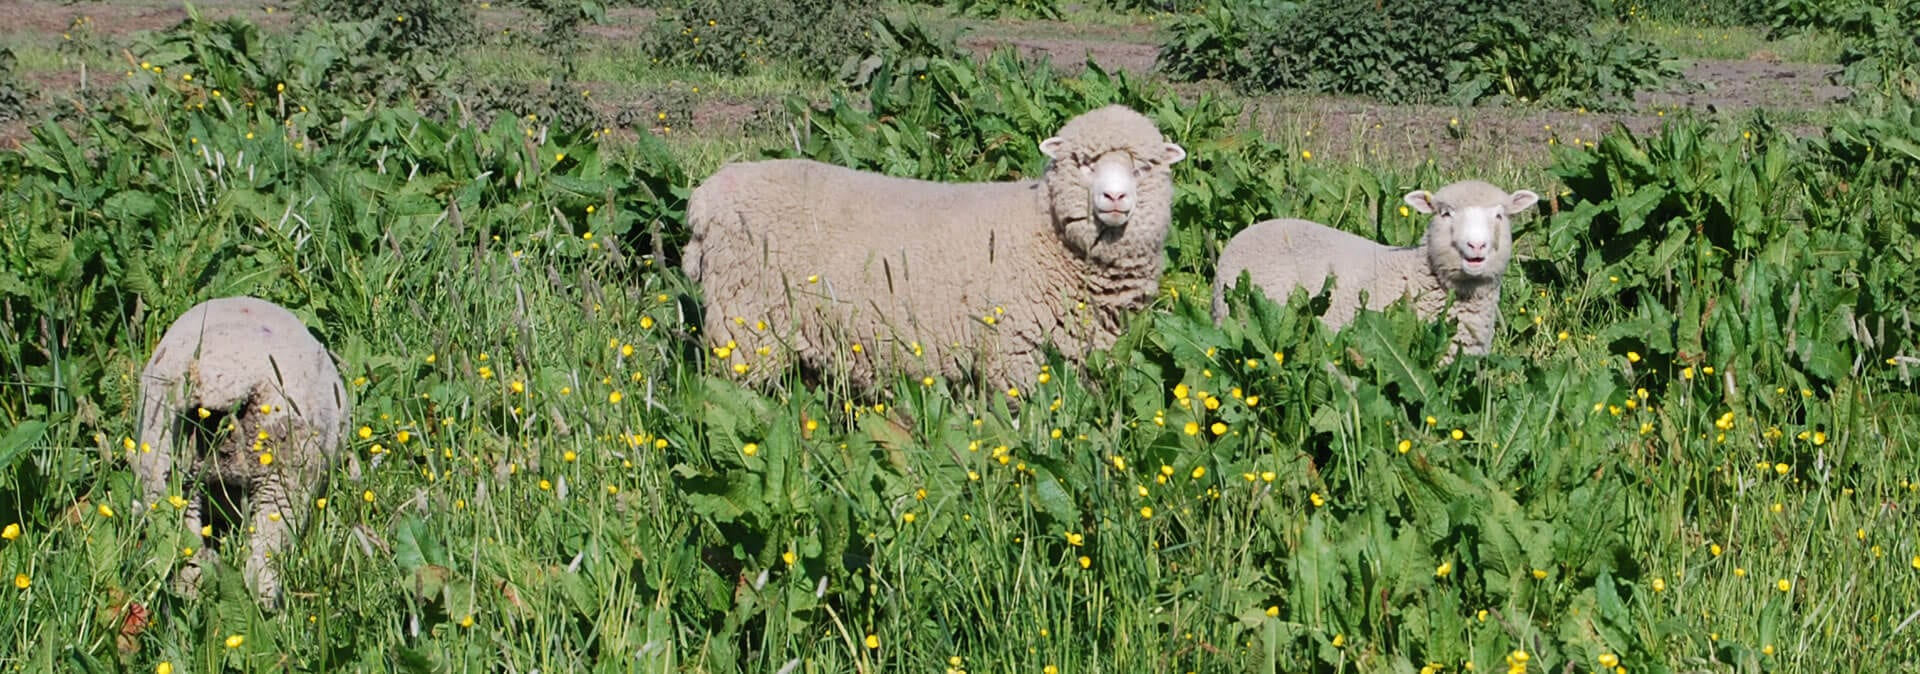 sheep-Isle-of-man